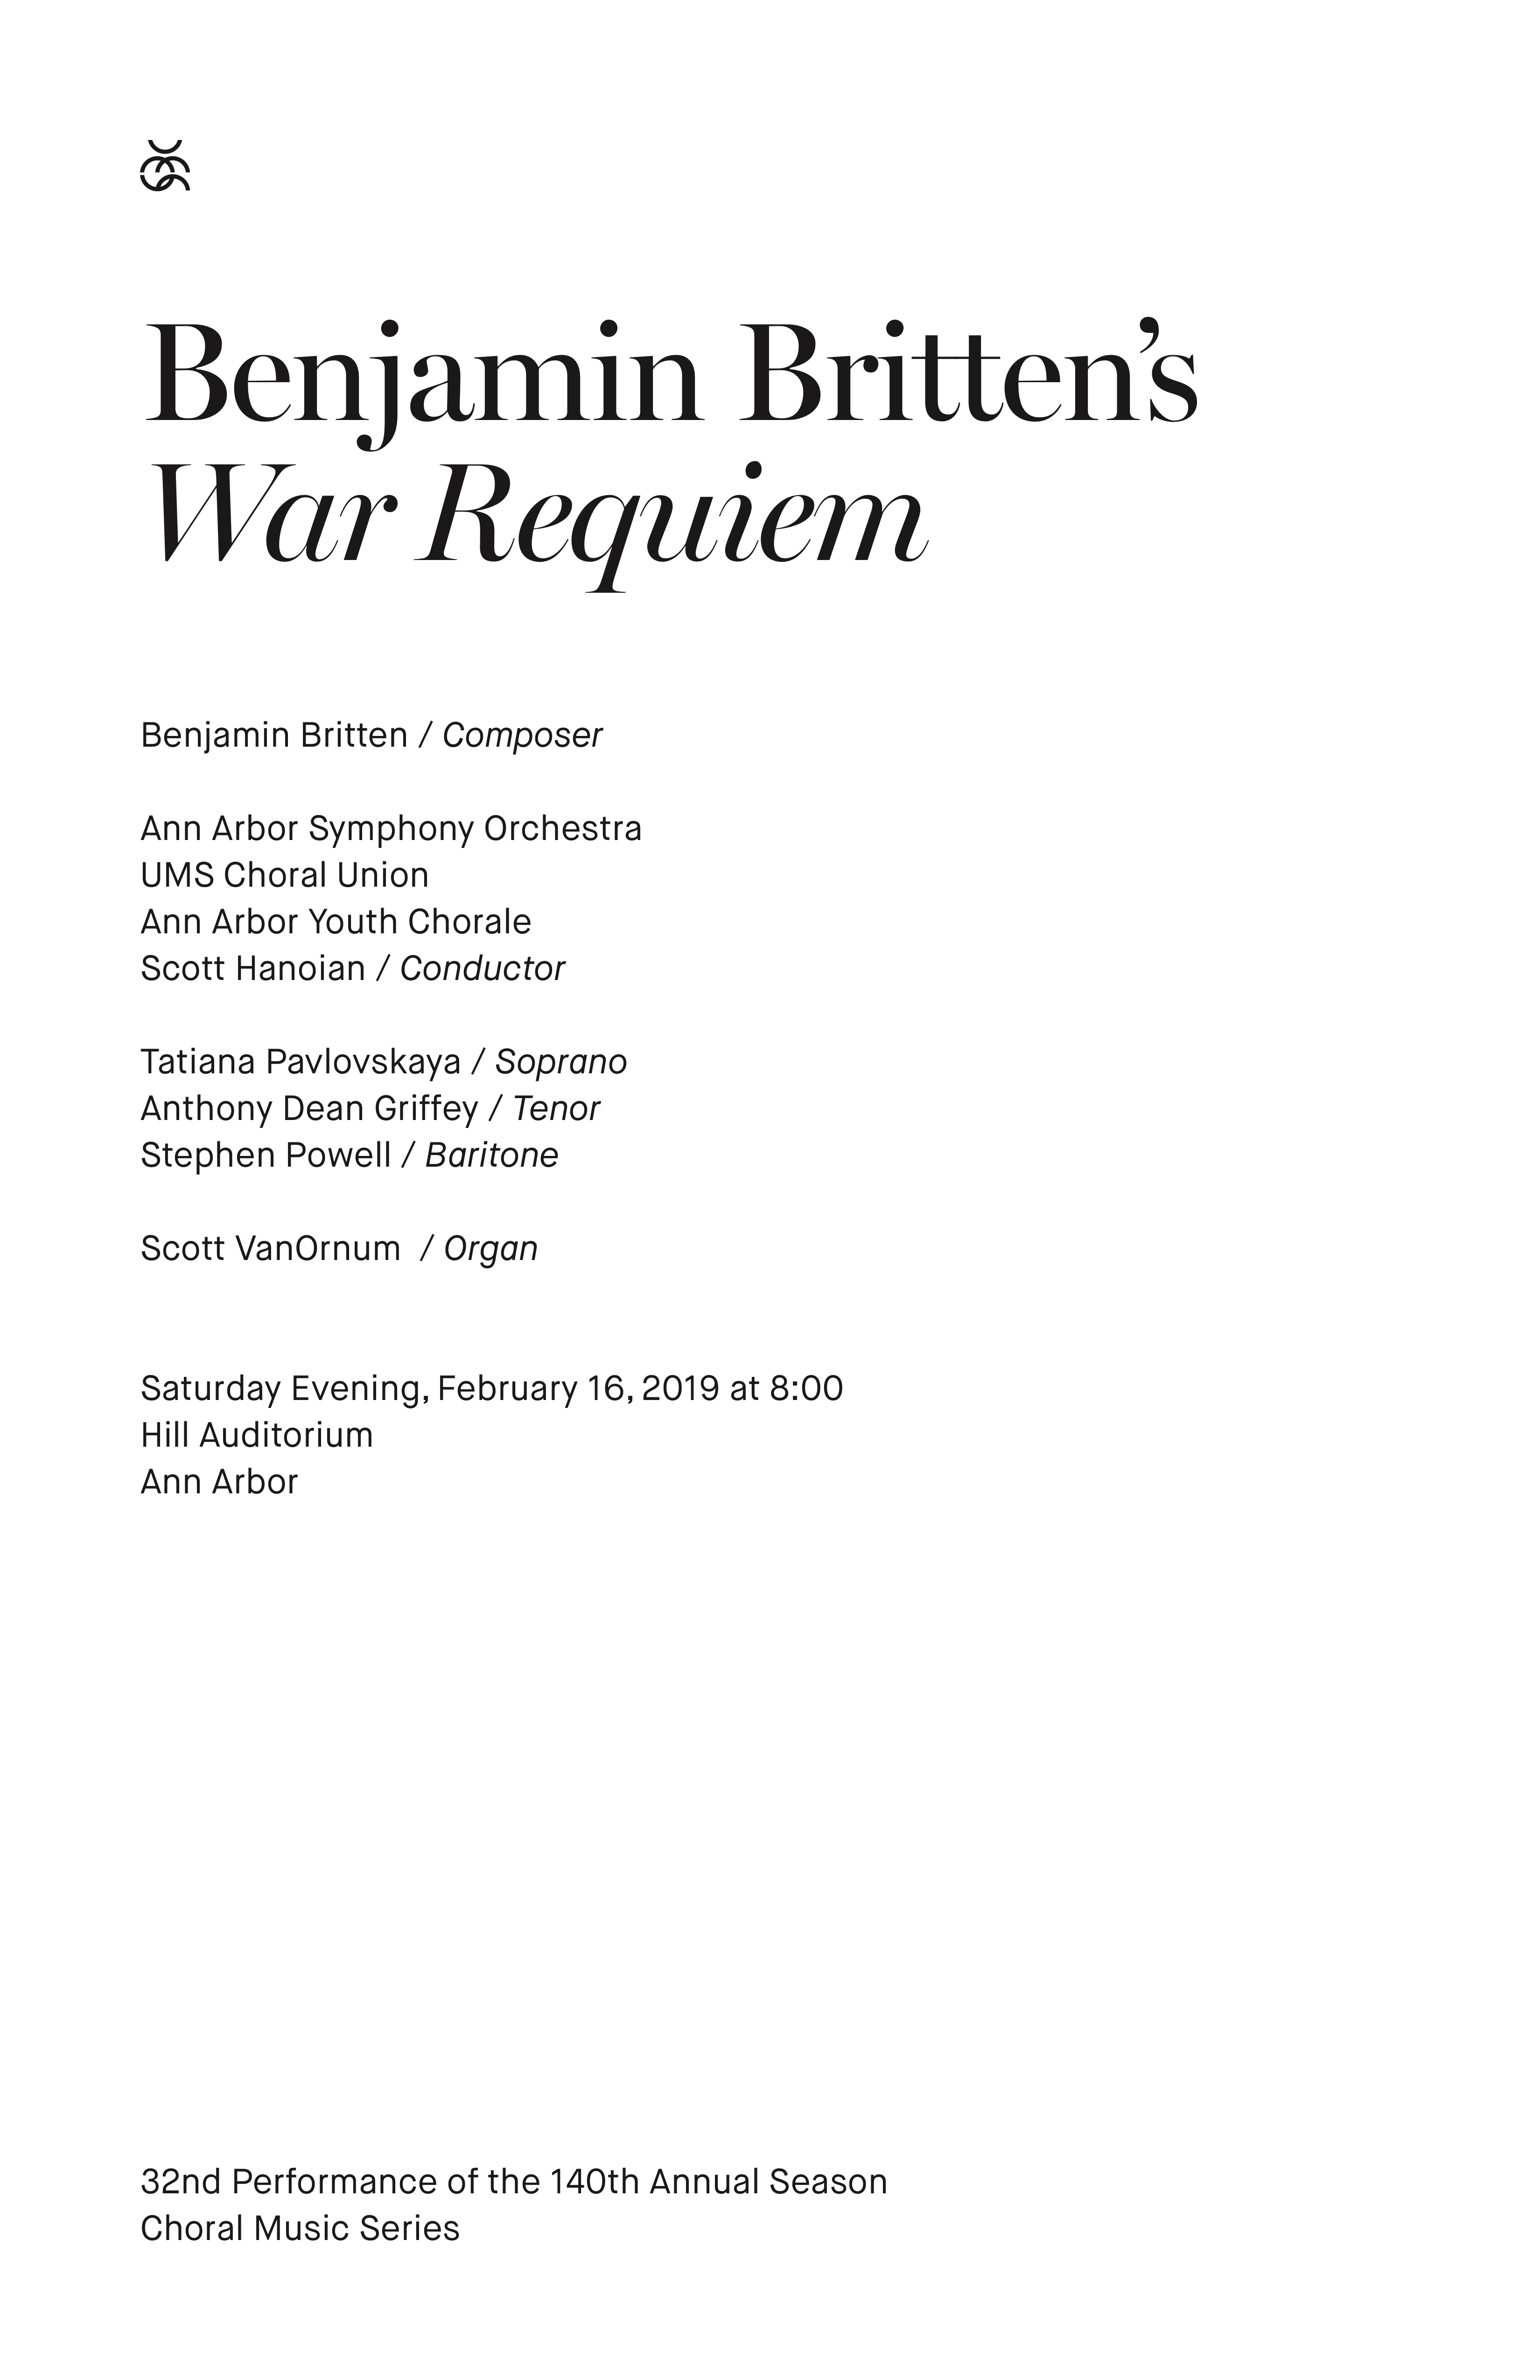 UMS Concert Program, February 16, 2019 - Benjamin Britten's War Requiem image